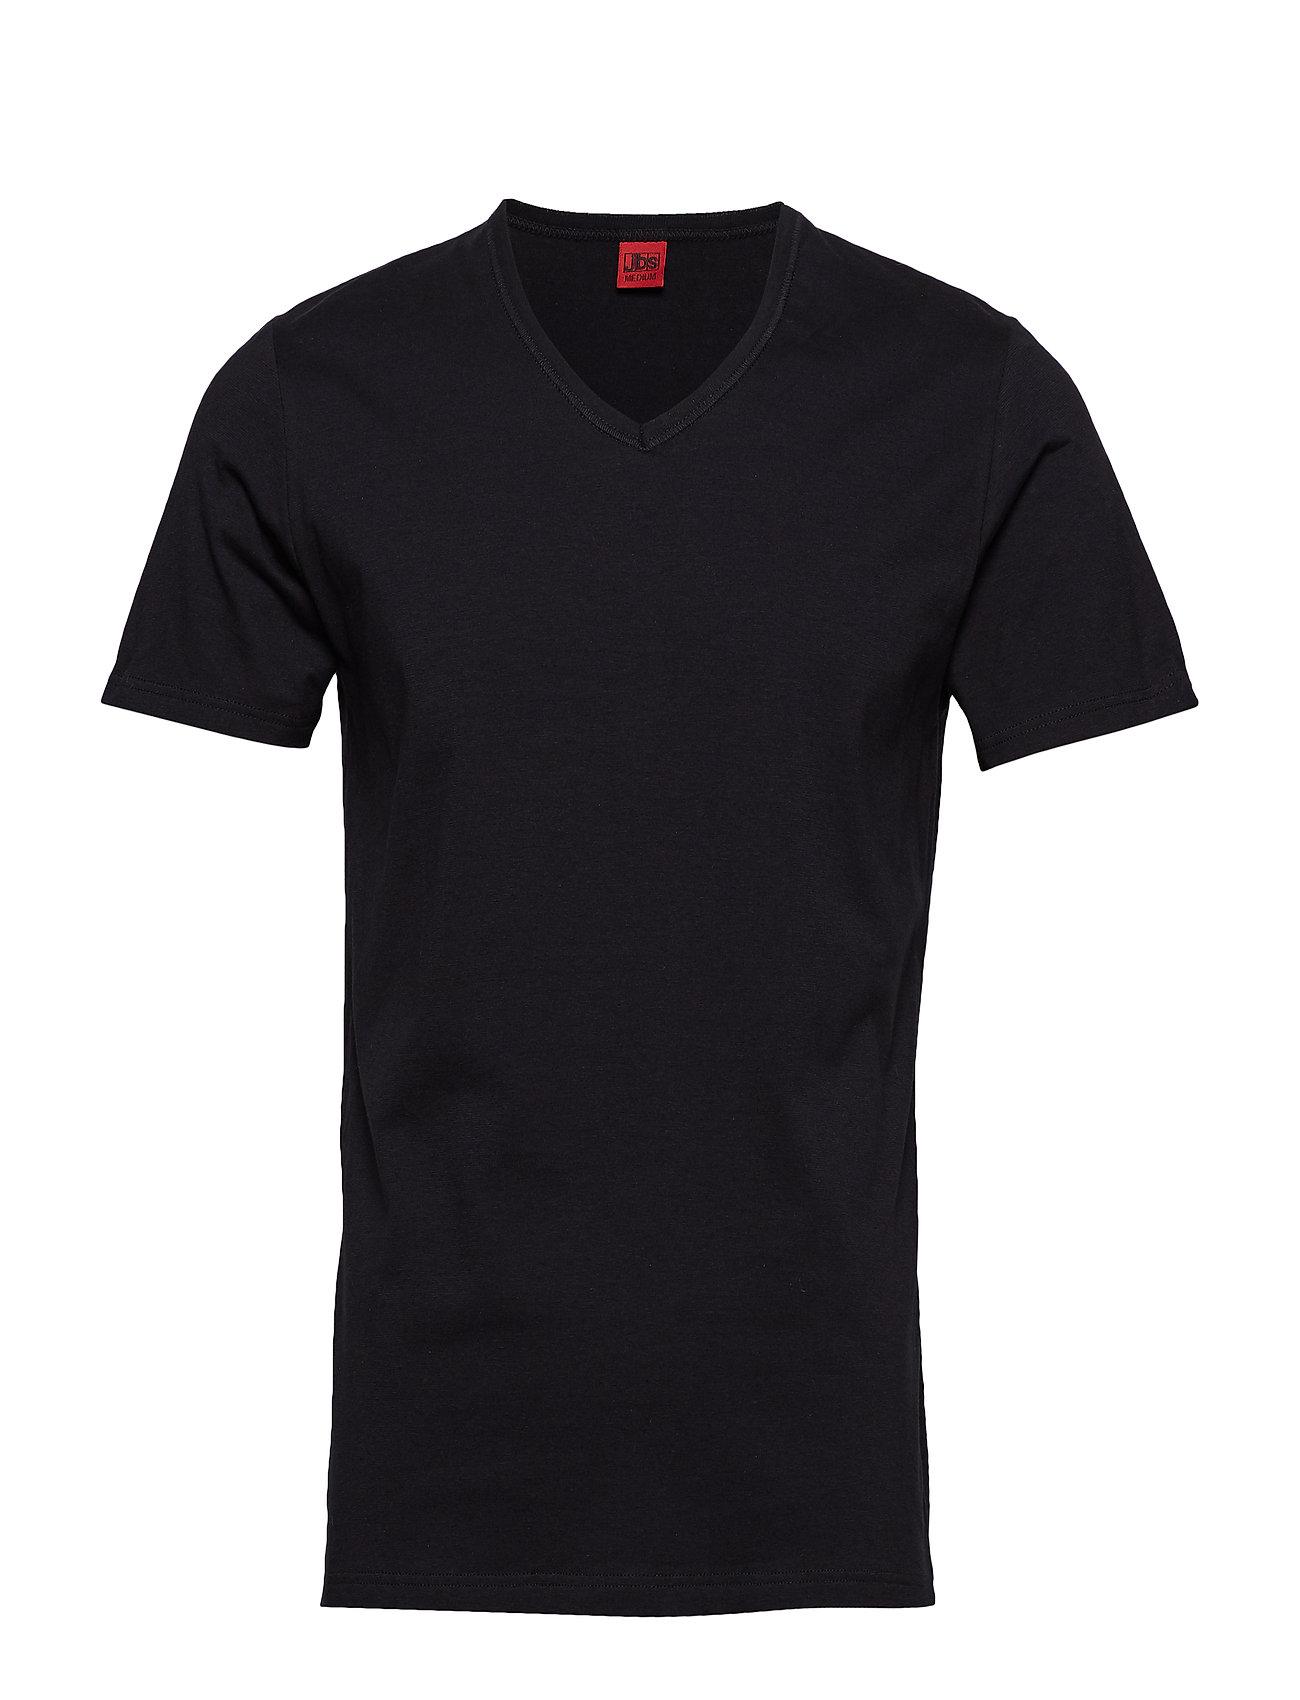 Basic V Neck Tee T shirt Sort JBS